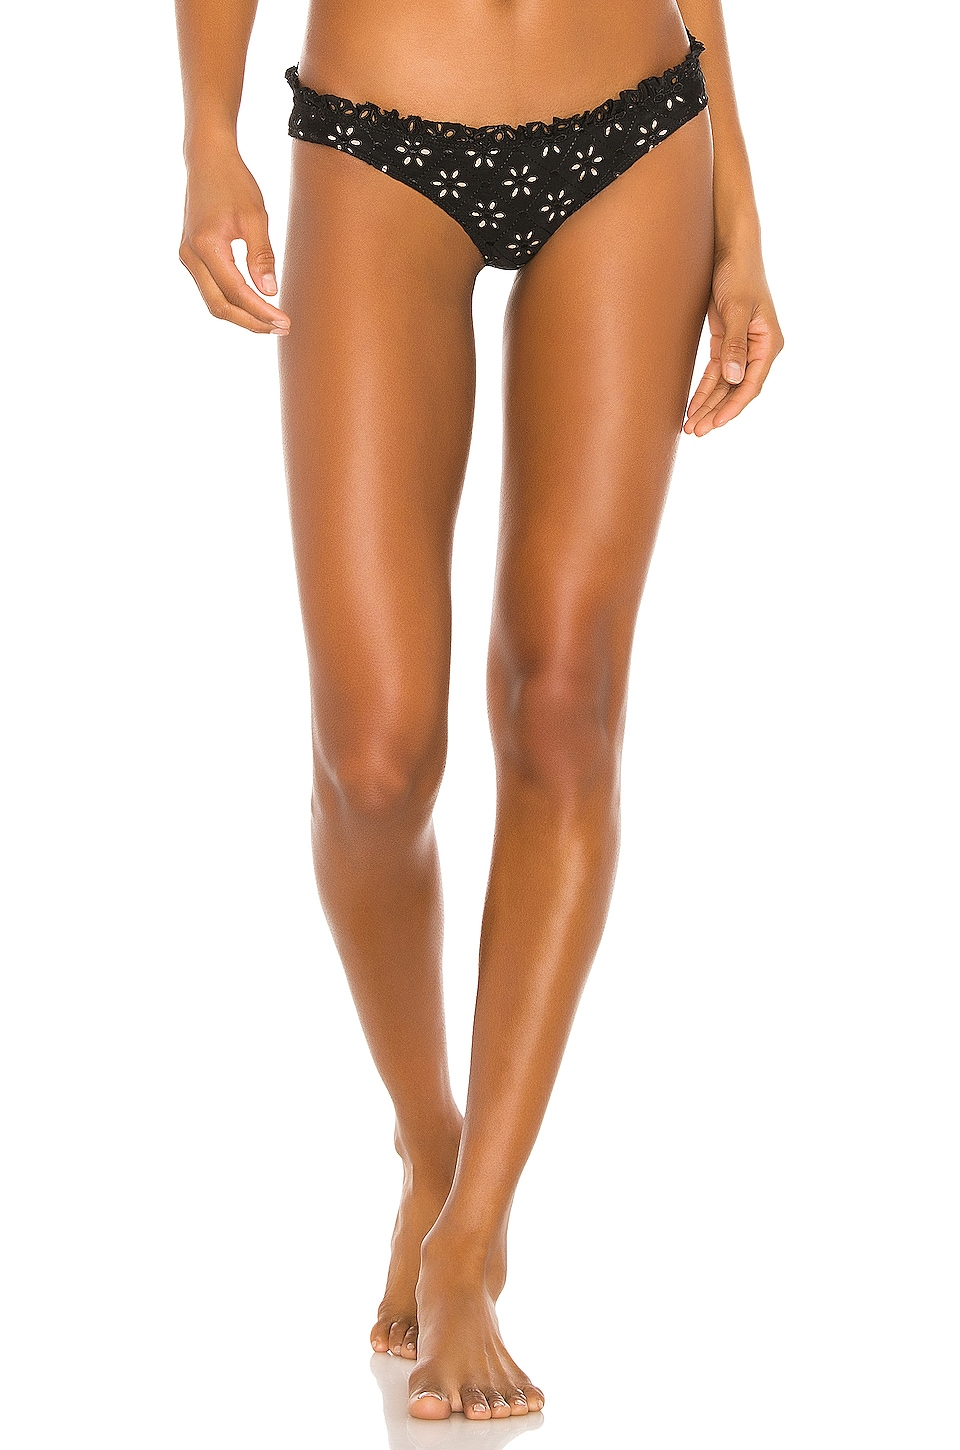 Tularosa Cori Bottom in Black